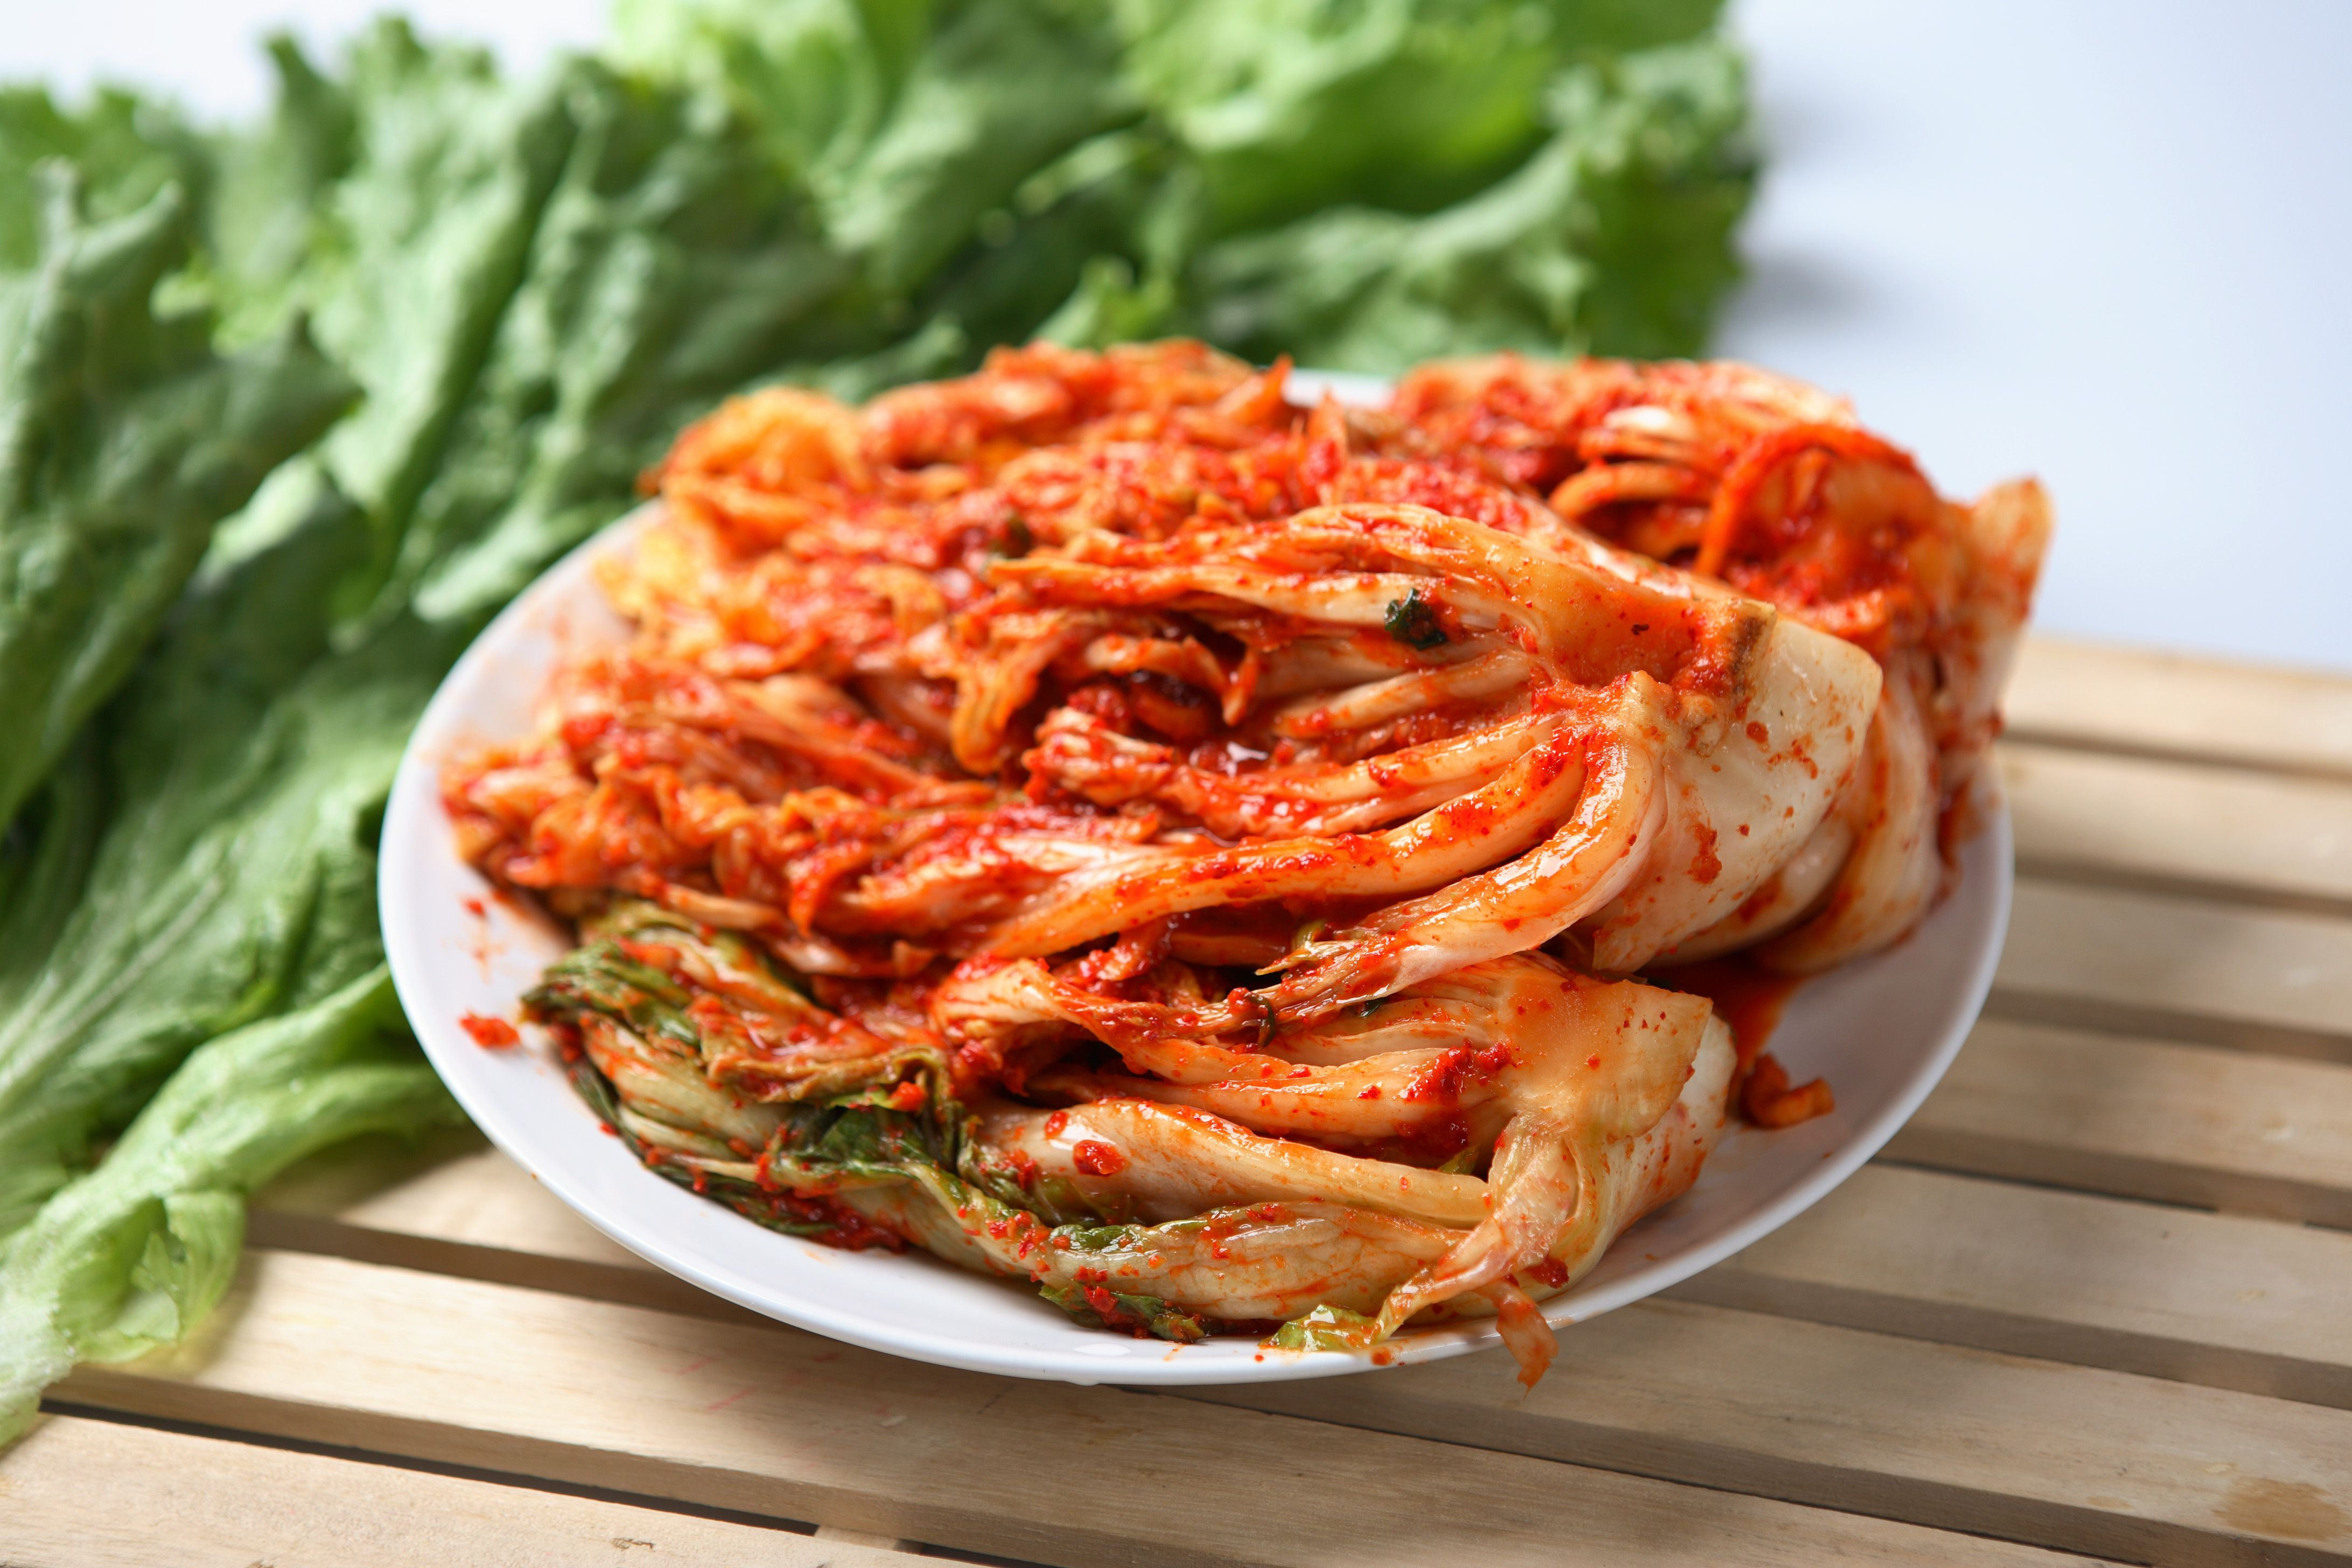 Qu'est ce qu'on mange ? - Page 11 Kimchi-dish-served-on-a-white-plate-173021127-588b8a945f9b5874ee55f535